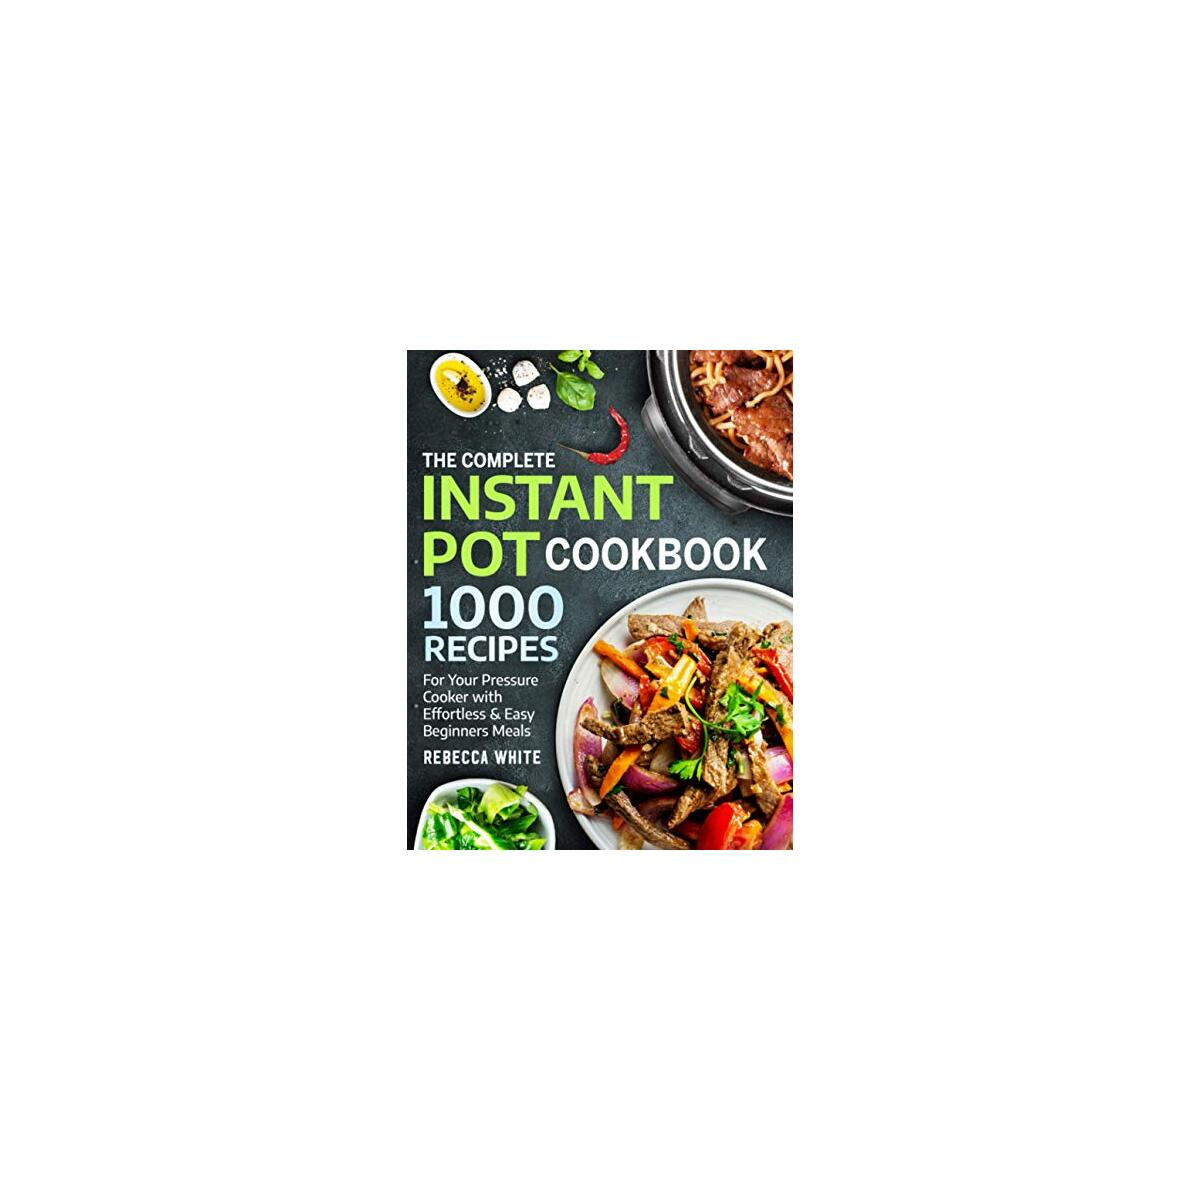 [Paperback] The Complete Instant Pot Cookbook 1000 Recipes